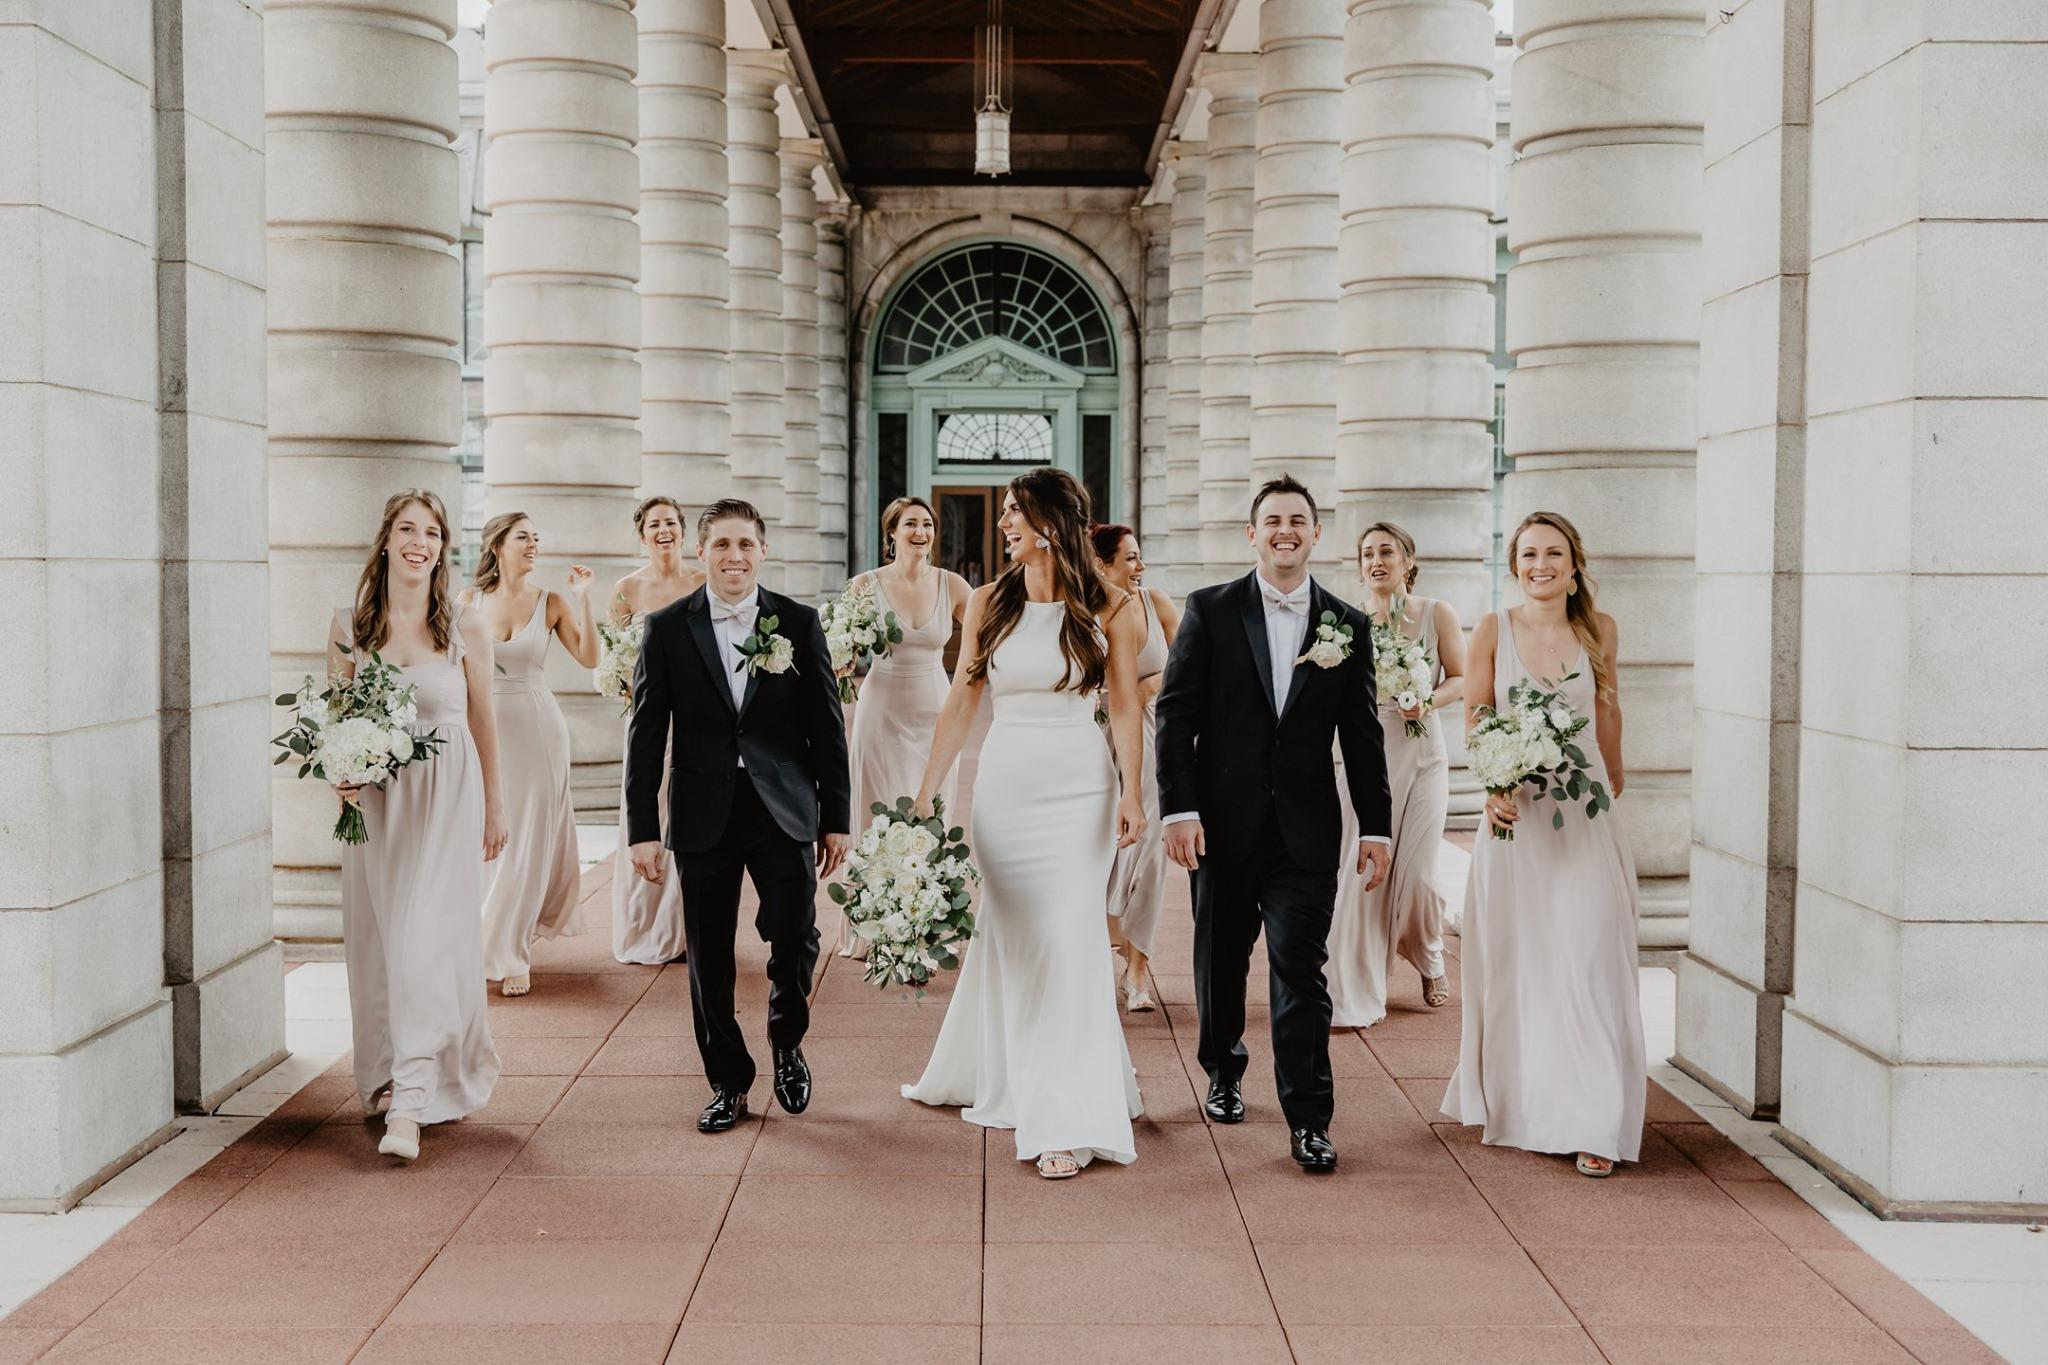 bride, groom and wedding party walking towards photographer, laughing, with white columns on either side